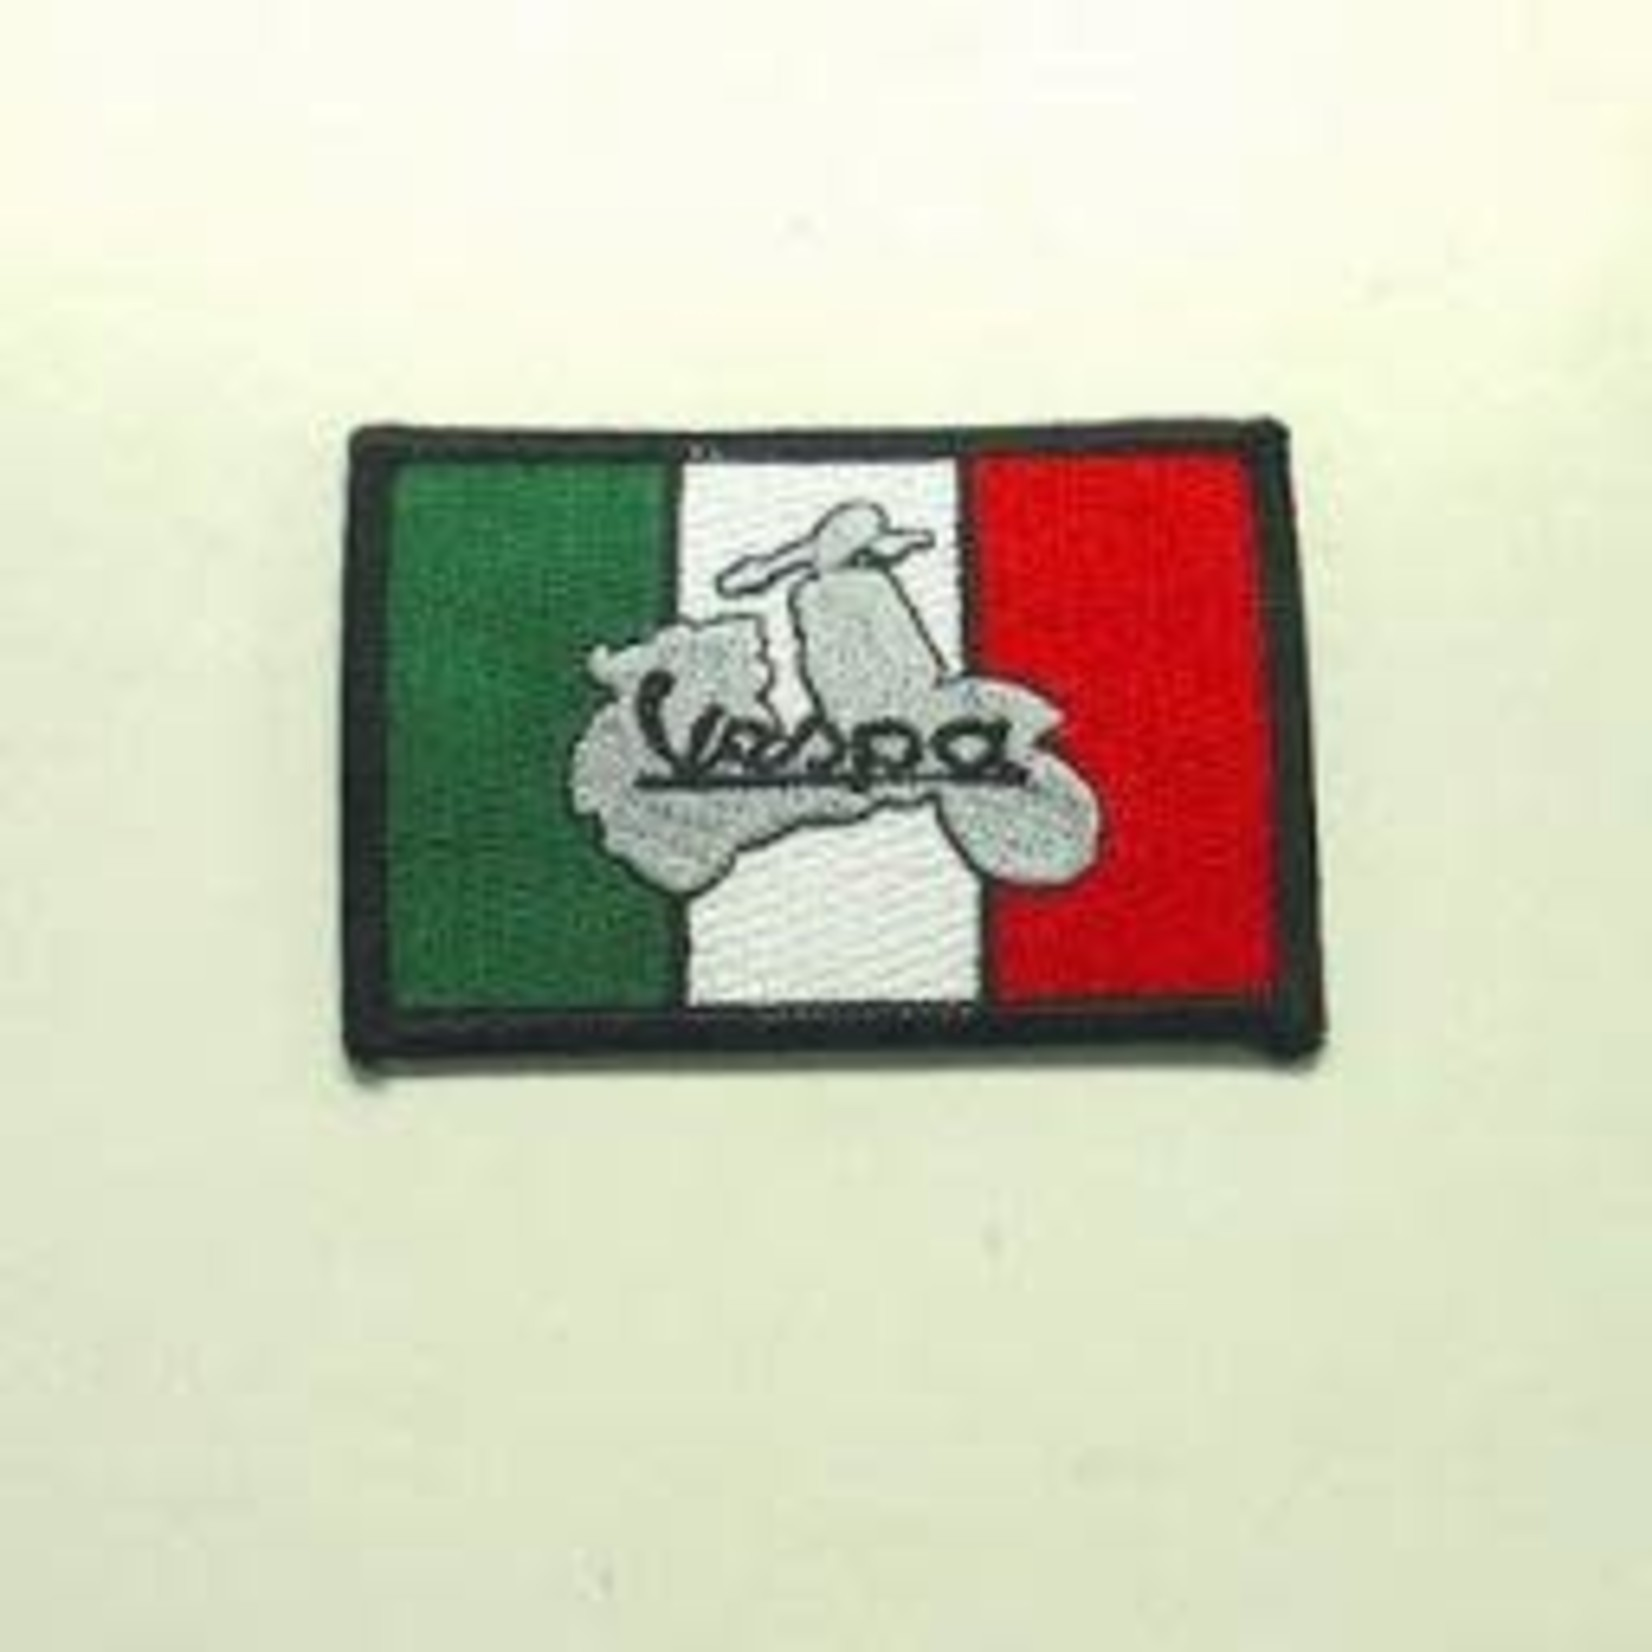 Lifestyle Patch, 'Vespa' inside Italian Flag